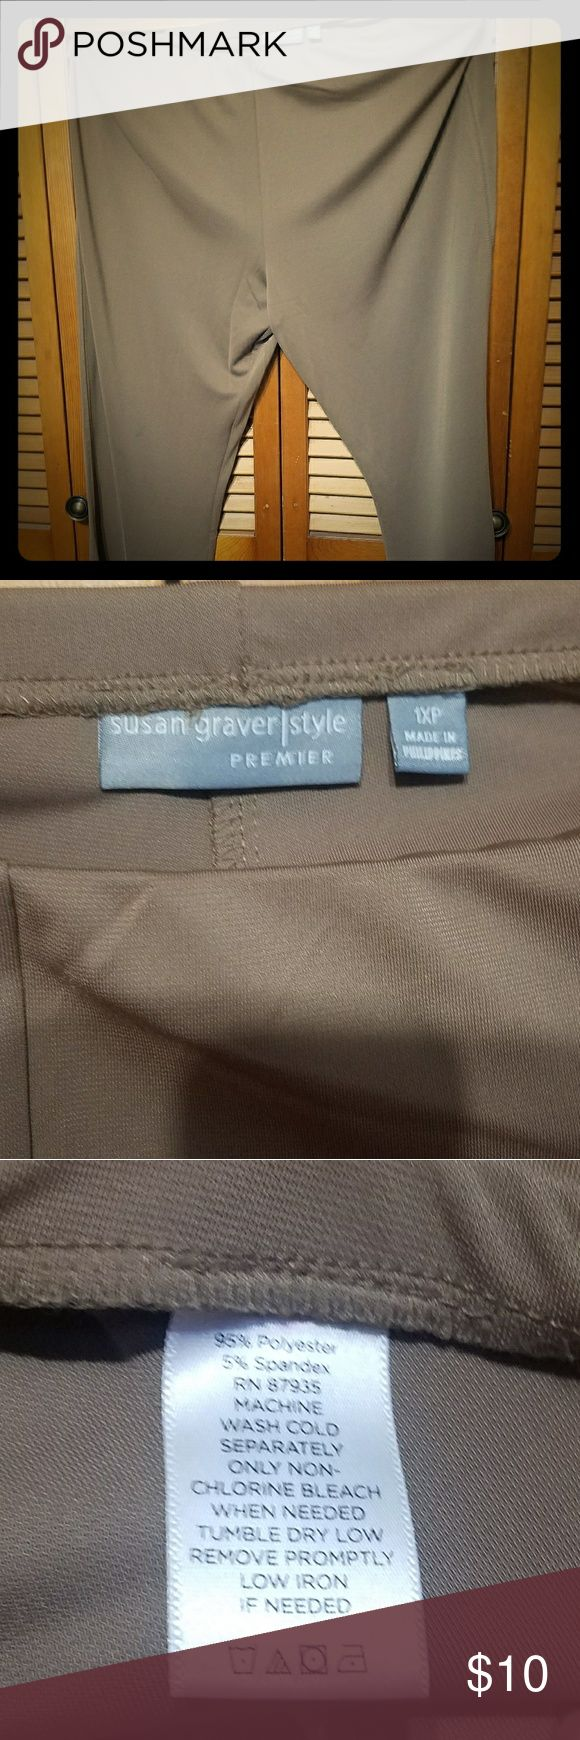 Olive green dress pants Stretchy elastic waistband Very comfortable Pxl Petite but little longer Pants